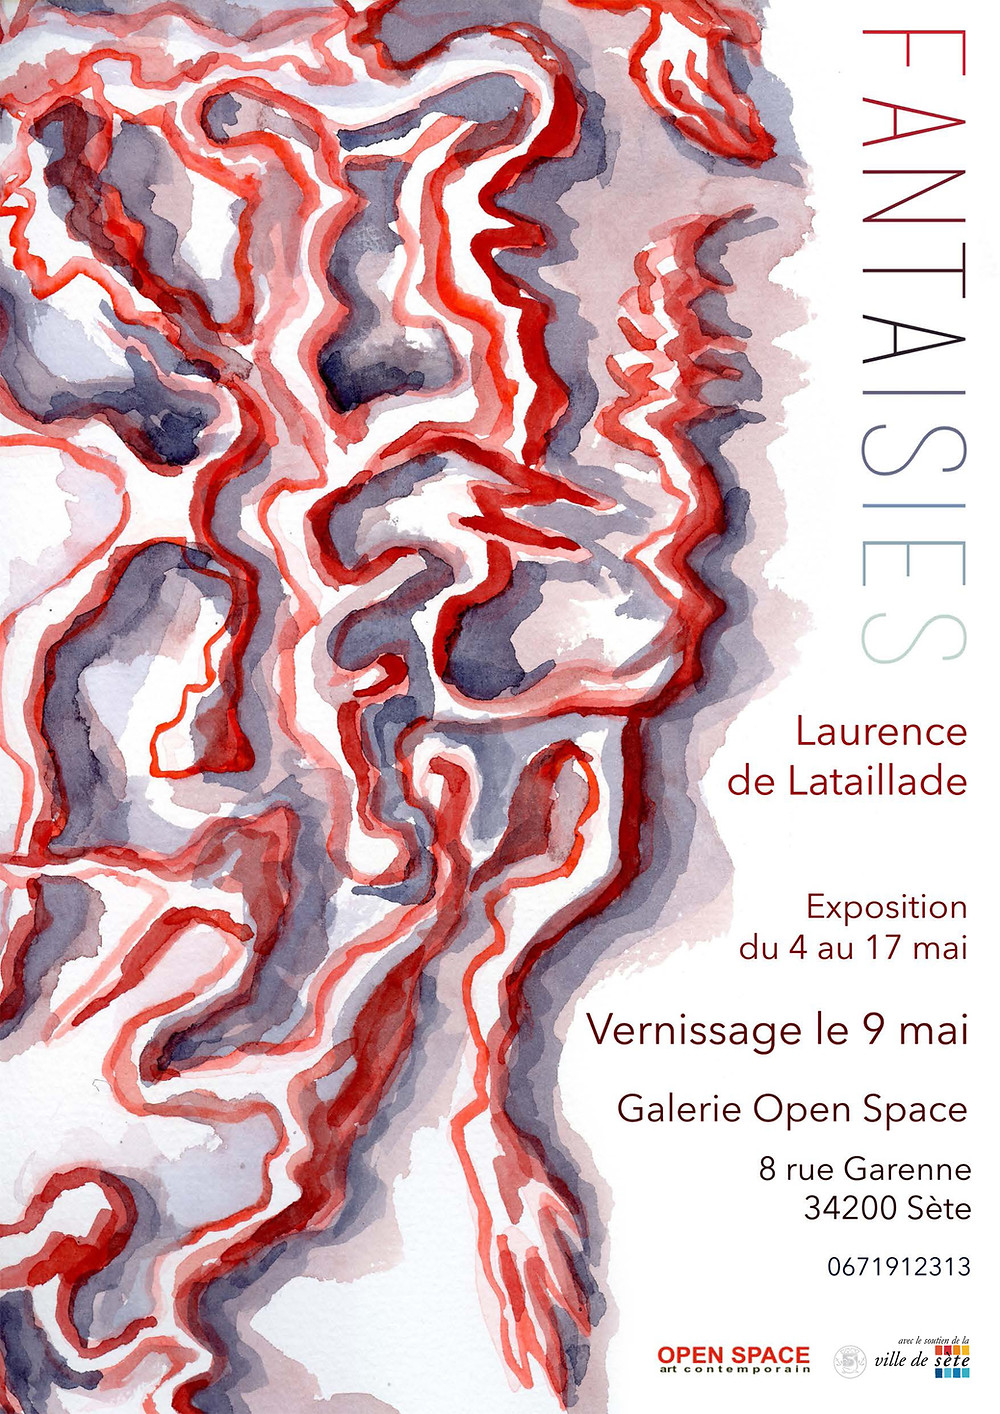 aff A3 OPENSPACE Laurence de Lataillade.jpg